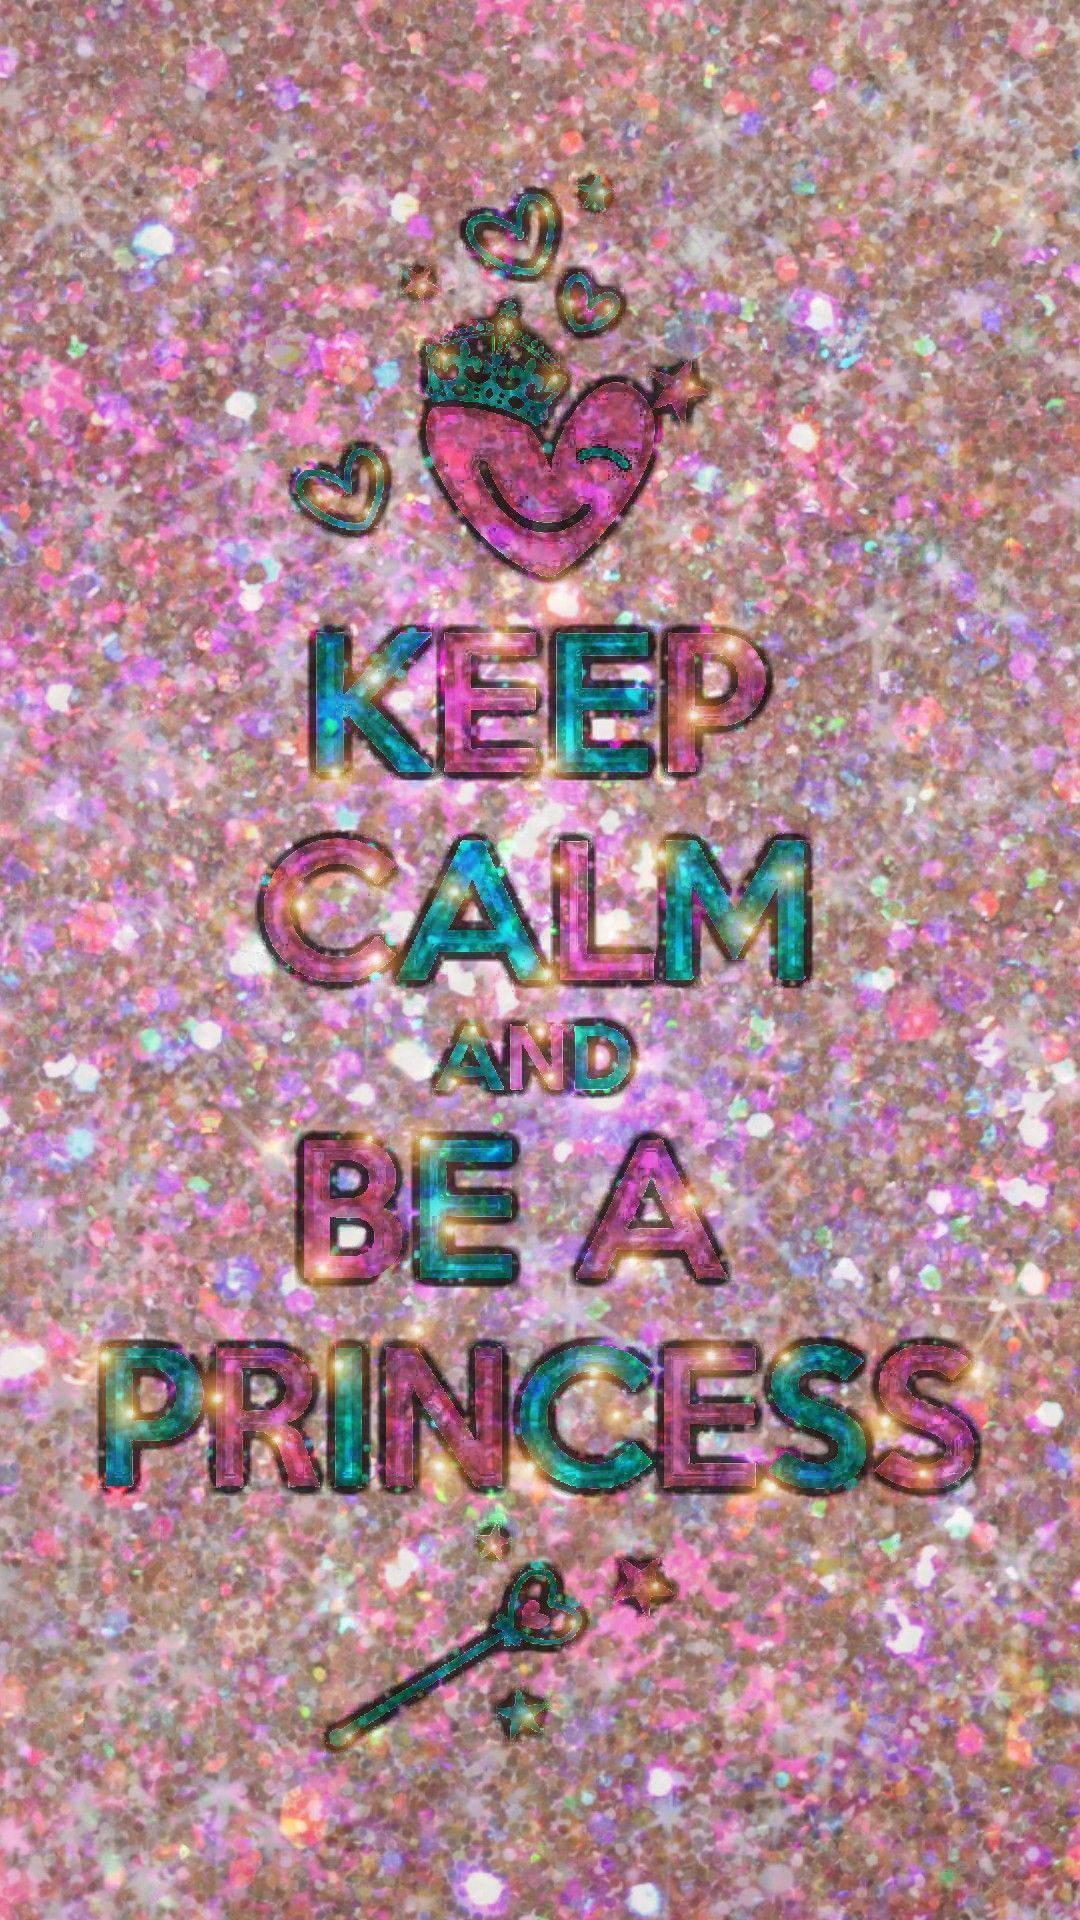 1080x1920 Keep Calm and Be A Princess, made by me #pink #girly #glitter ...